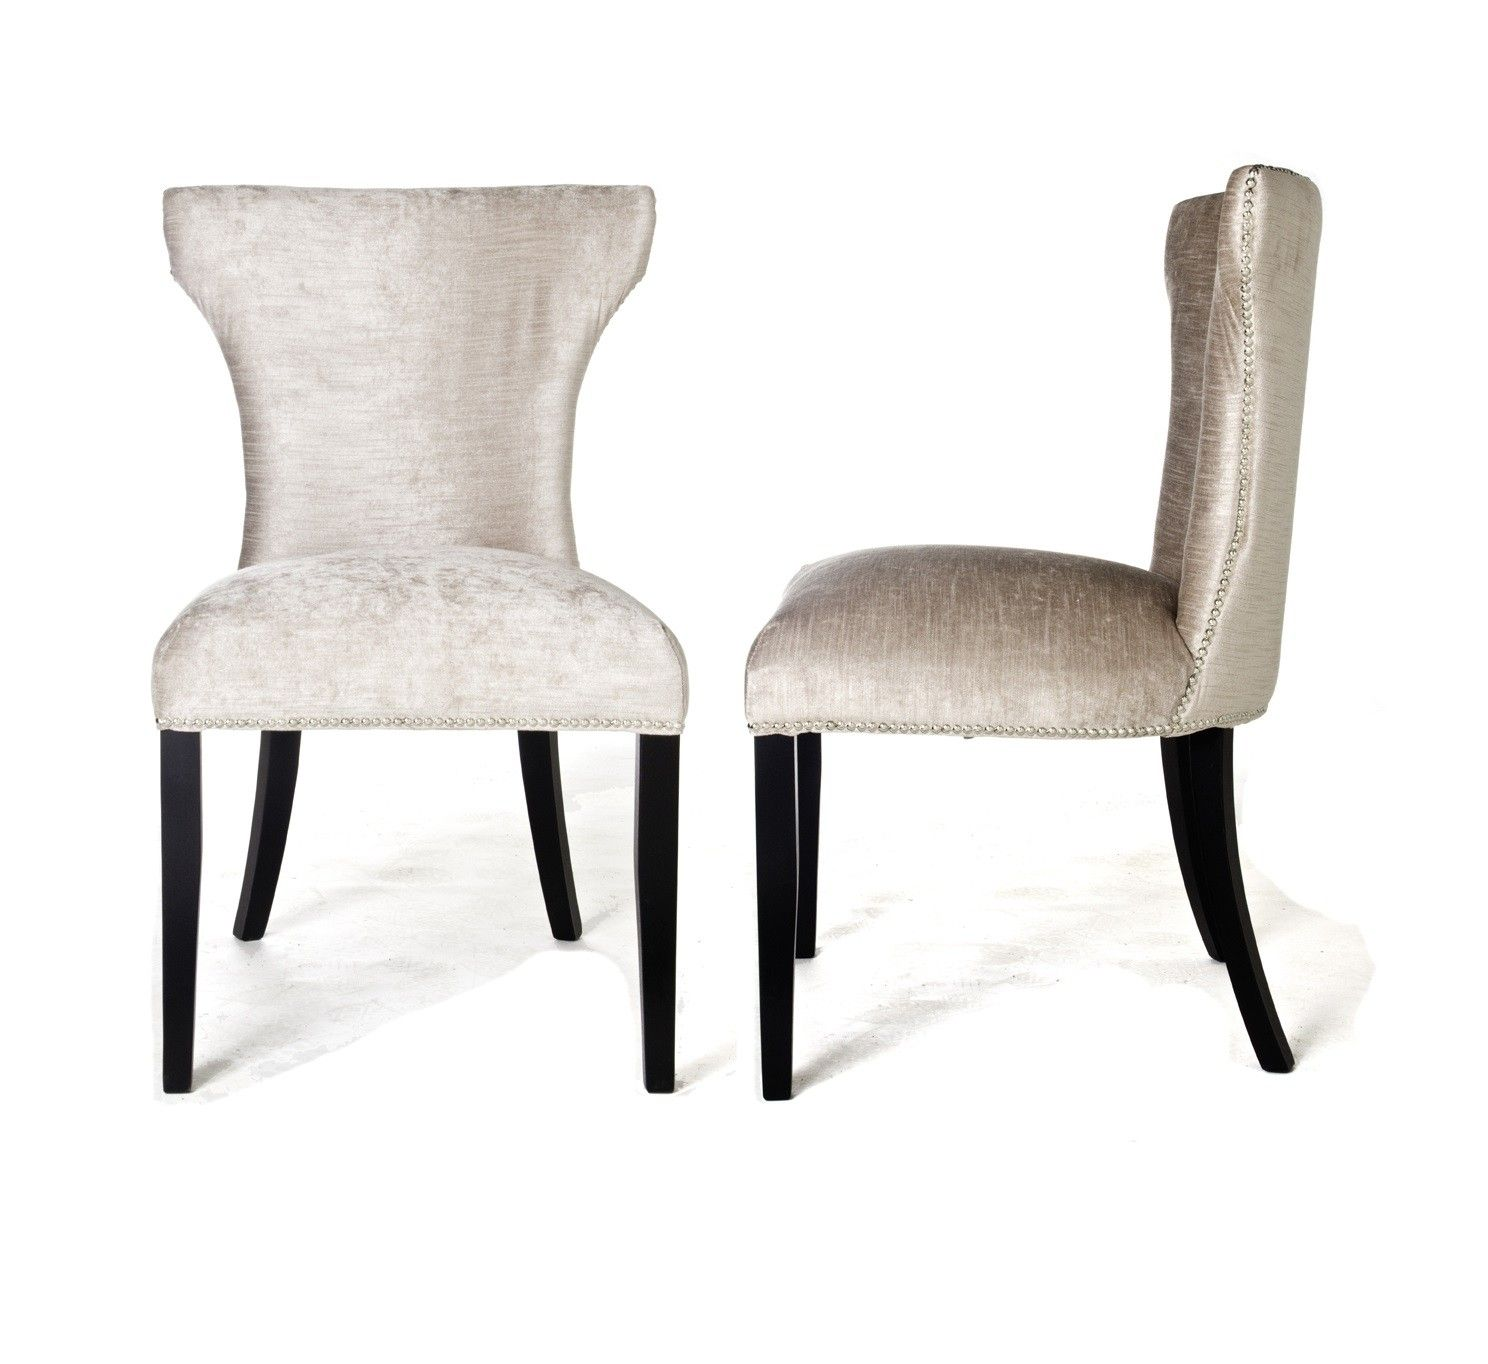 Luxury Windsor Gold Velvet Dining Chair Furniture Seating Dining